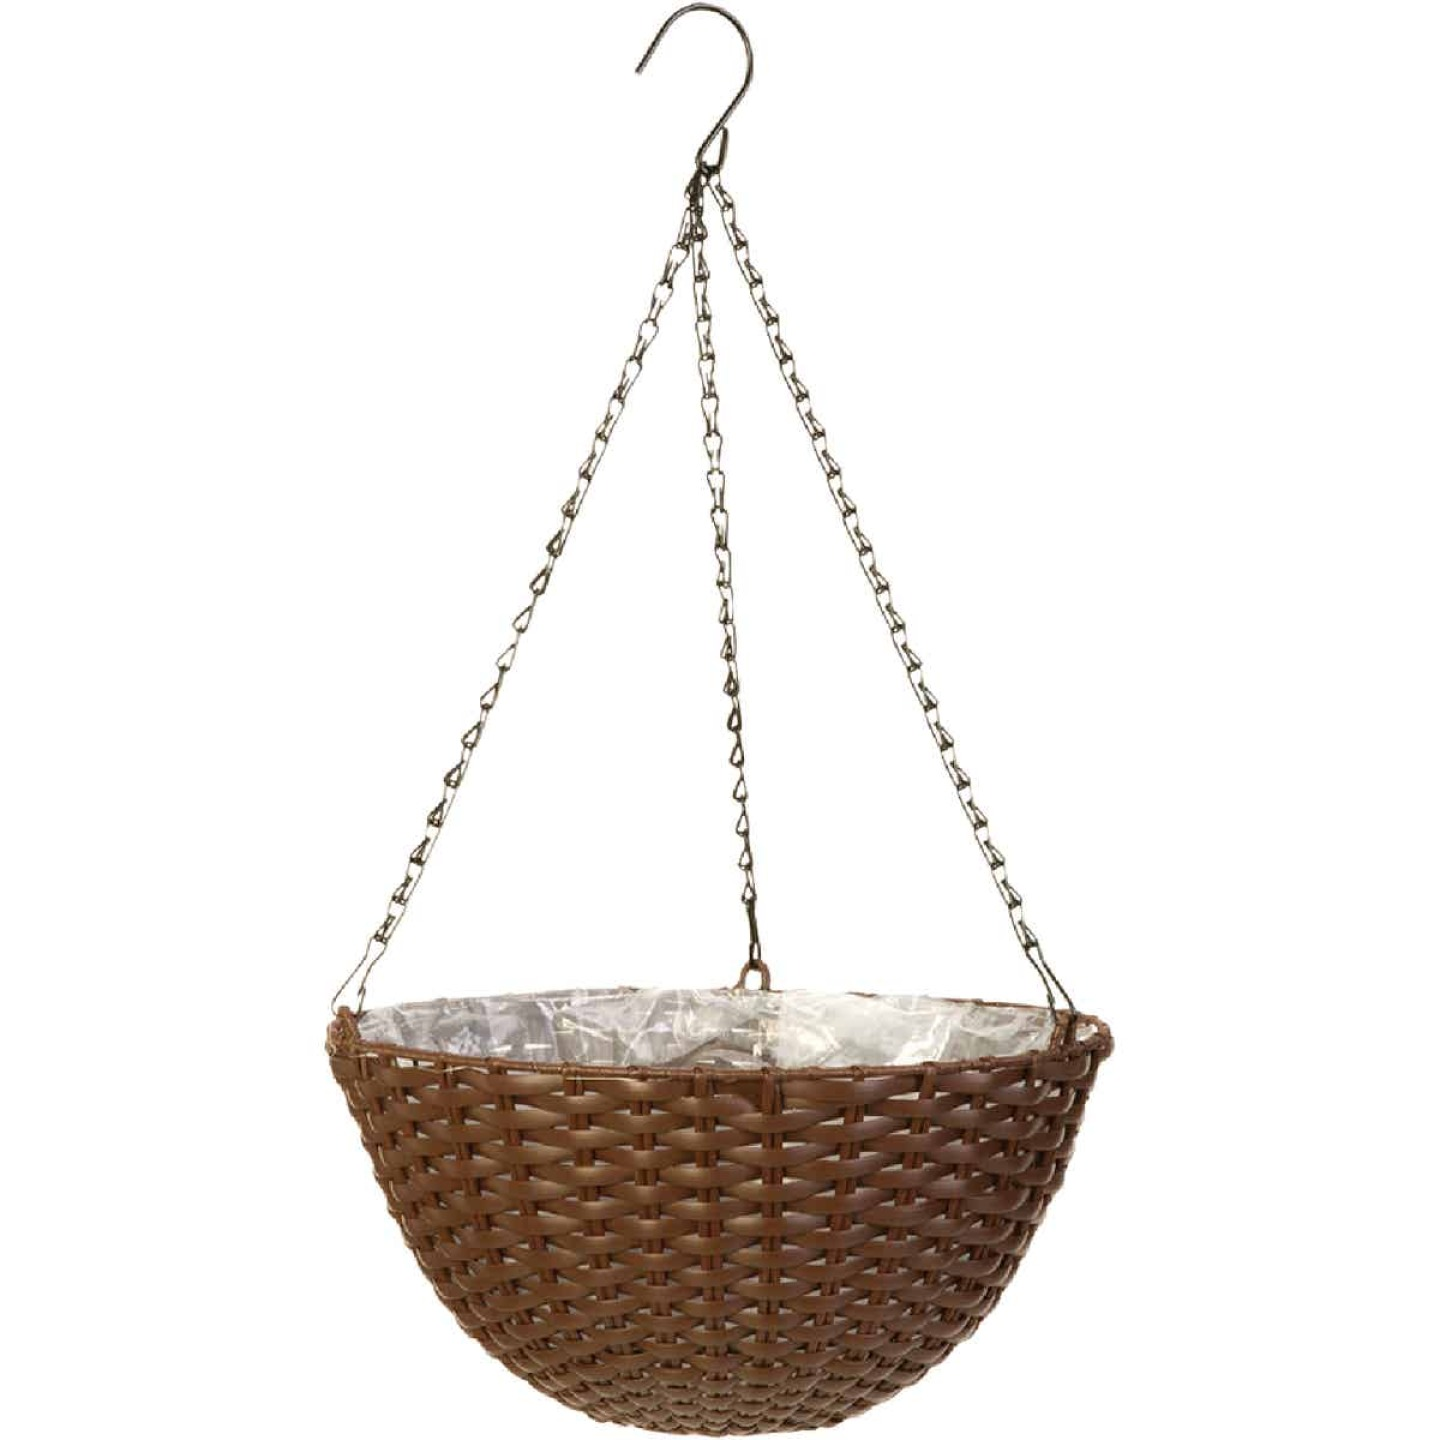 Panacea 14 In. Resin Espresso Brown Hanging Plant Basket Image 1